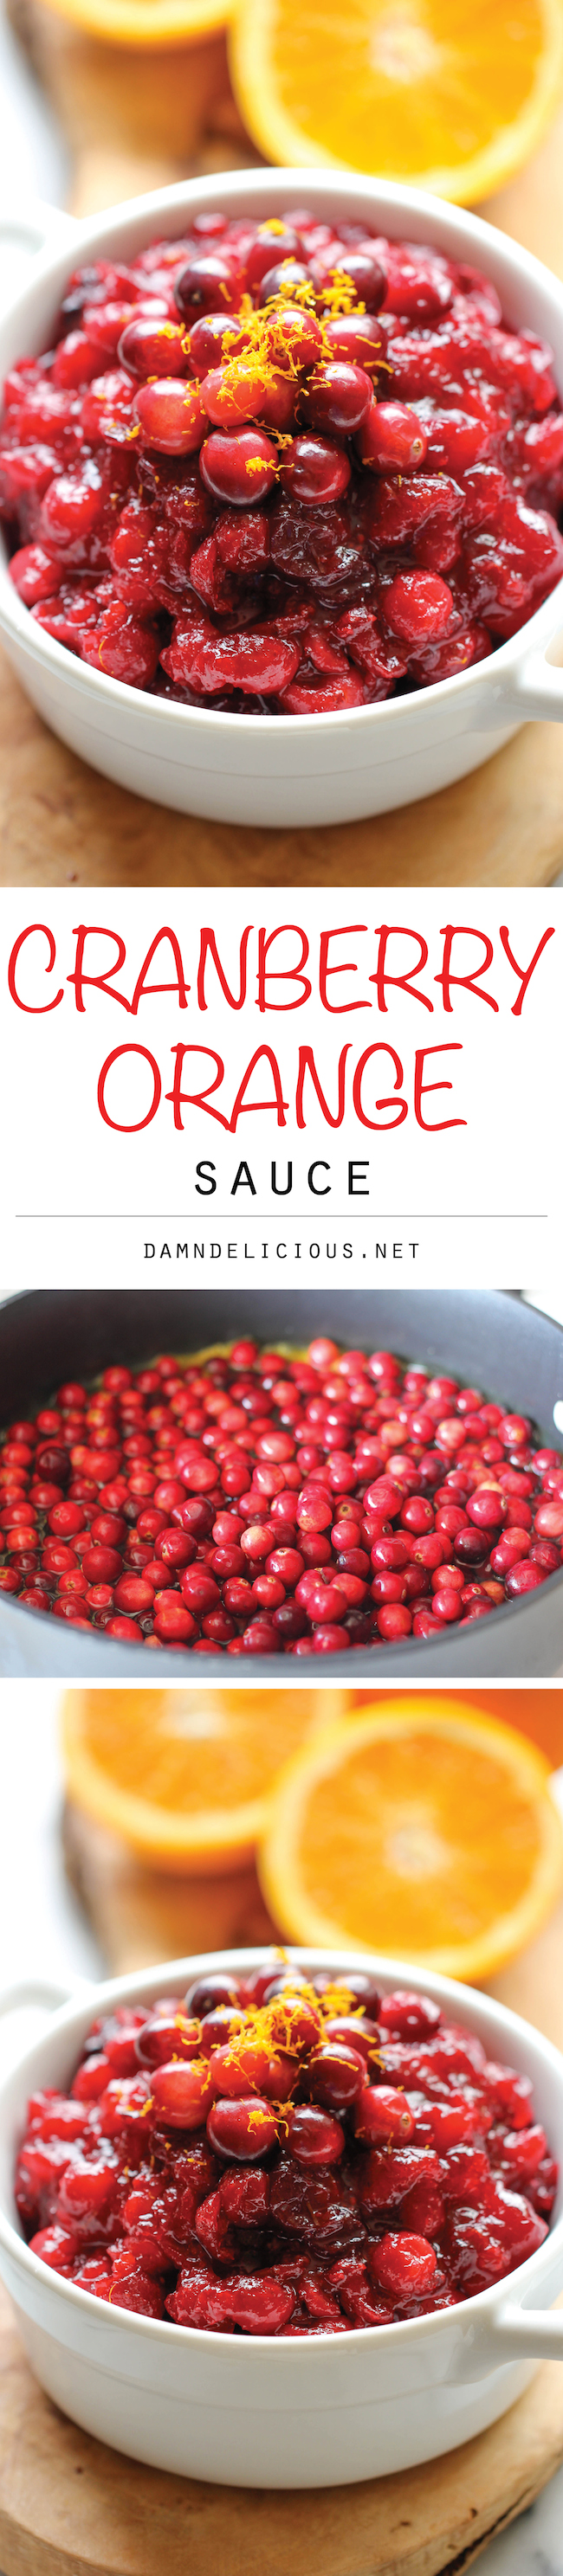 Cranberry Orange Sauce - Skip the canned cranberry sauce and make it right at home. It's embarrassingly easy with just 3 ingredients!